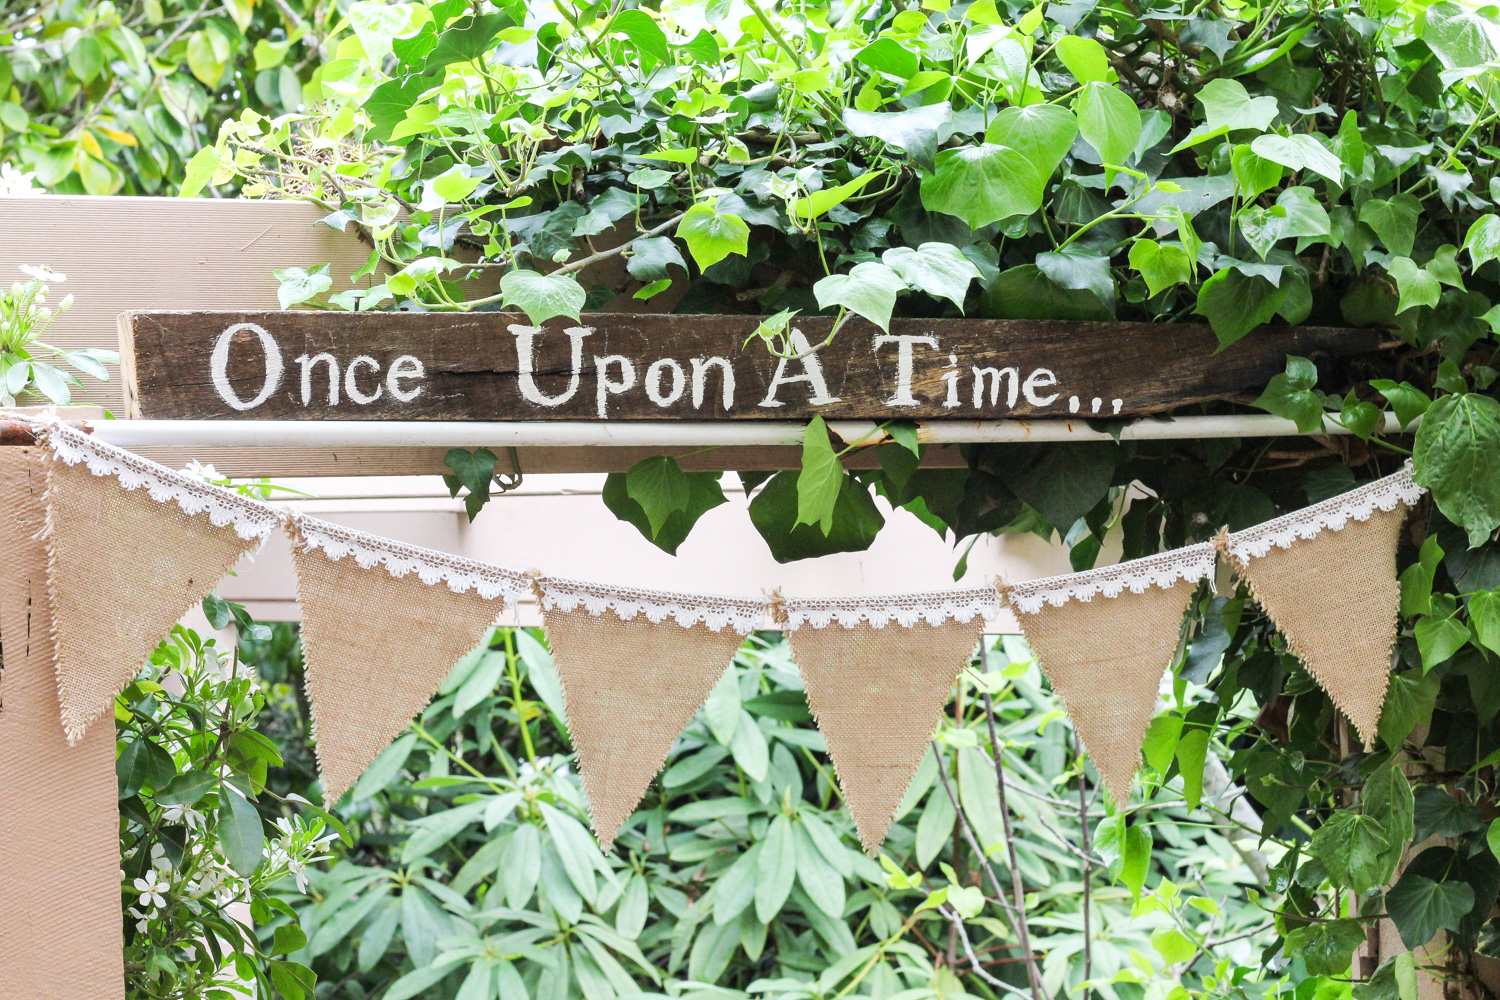 Once Upon A Time wooden sign with hessian and lace bunting